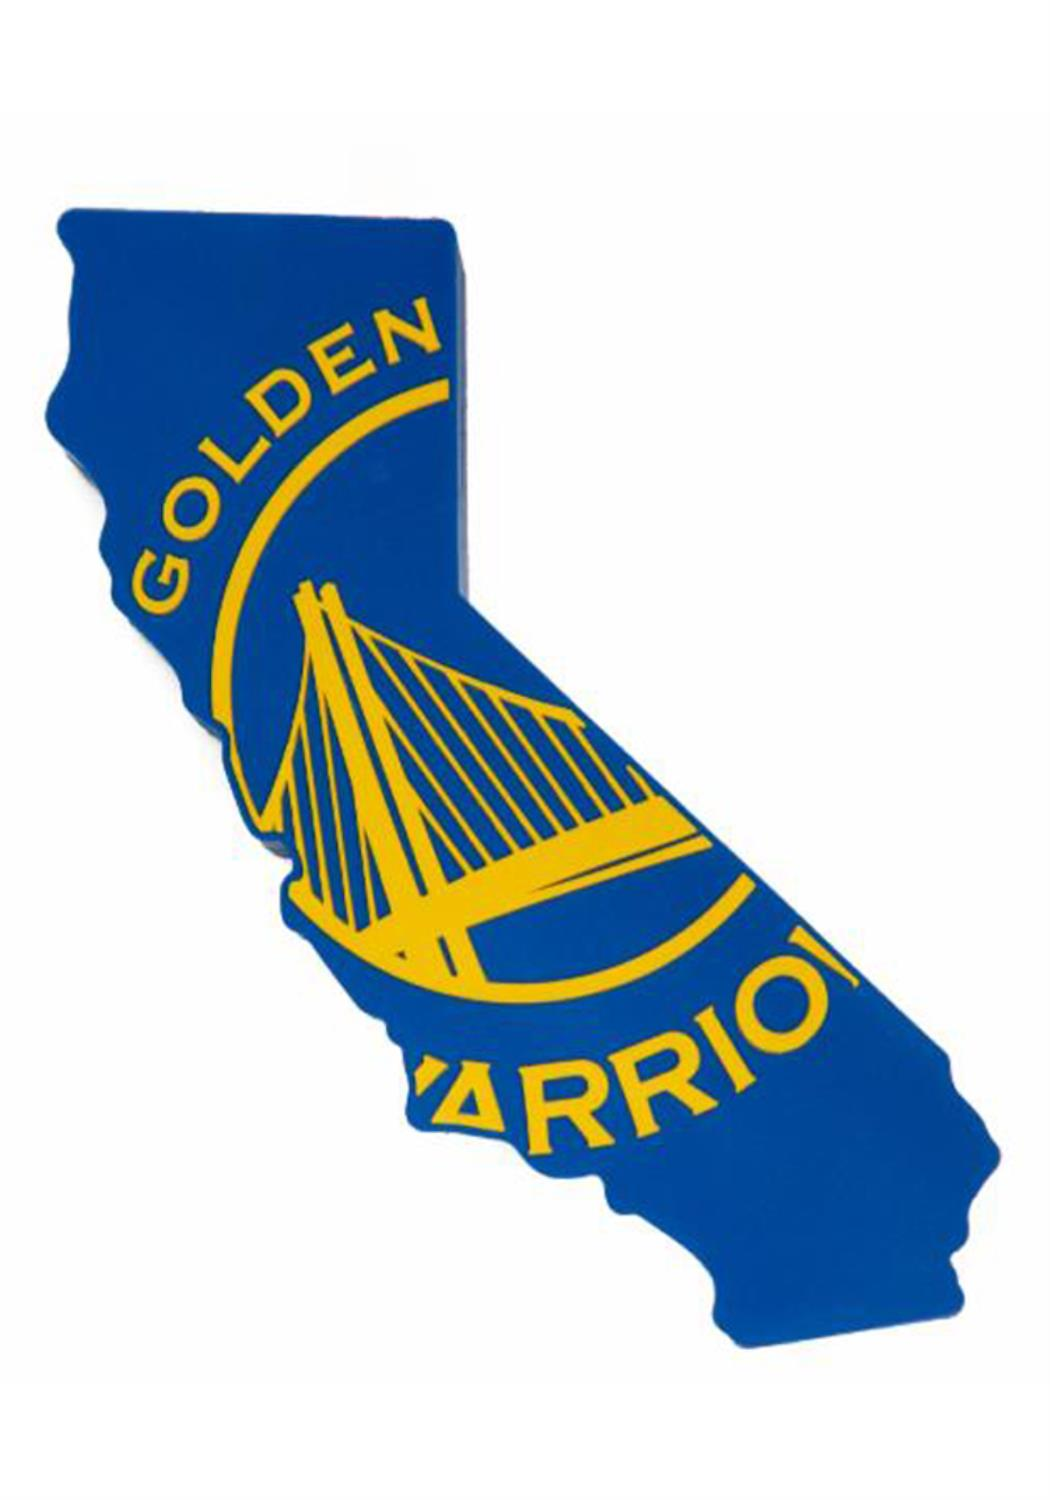 GOLDEN STATE - WARRIORS OFFICIAL NBA LICENSED PHONE CHARGER